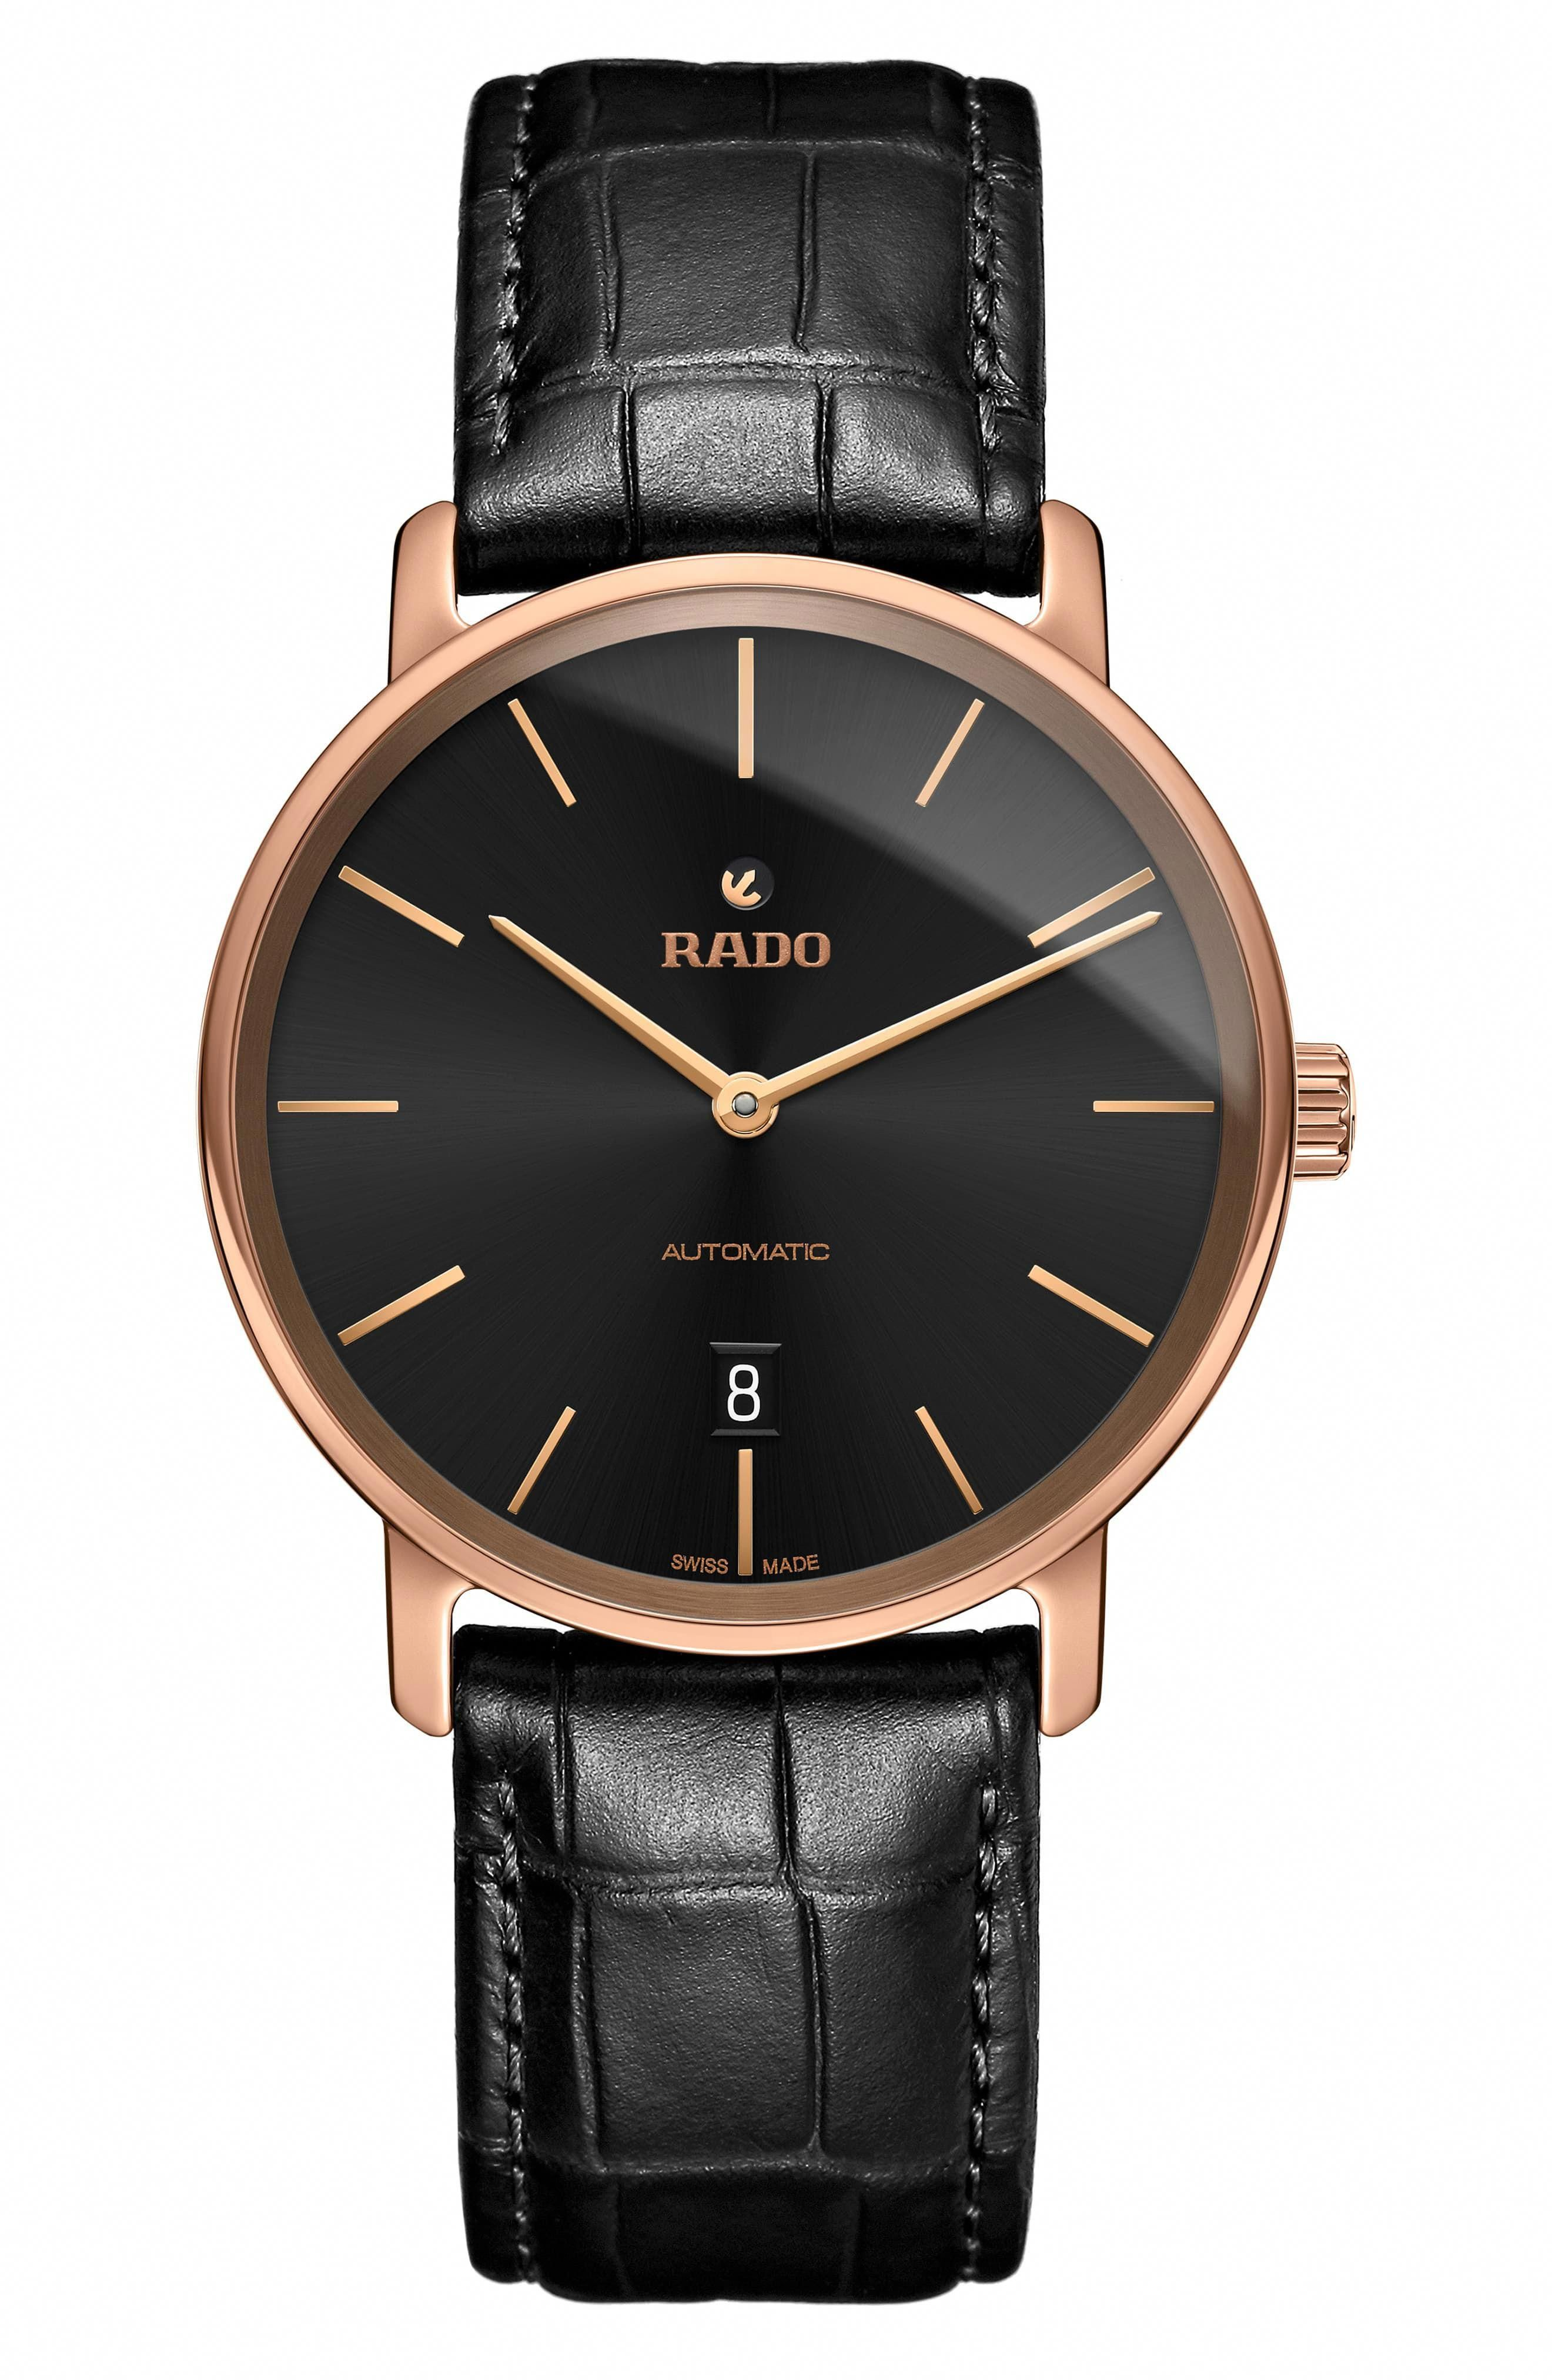 Rado Diamaster Automatic Leather Strap Watch 41mm In 2020 Luxury Watches For Men Best Watches For Men Watches For Men